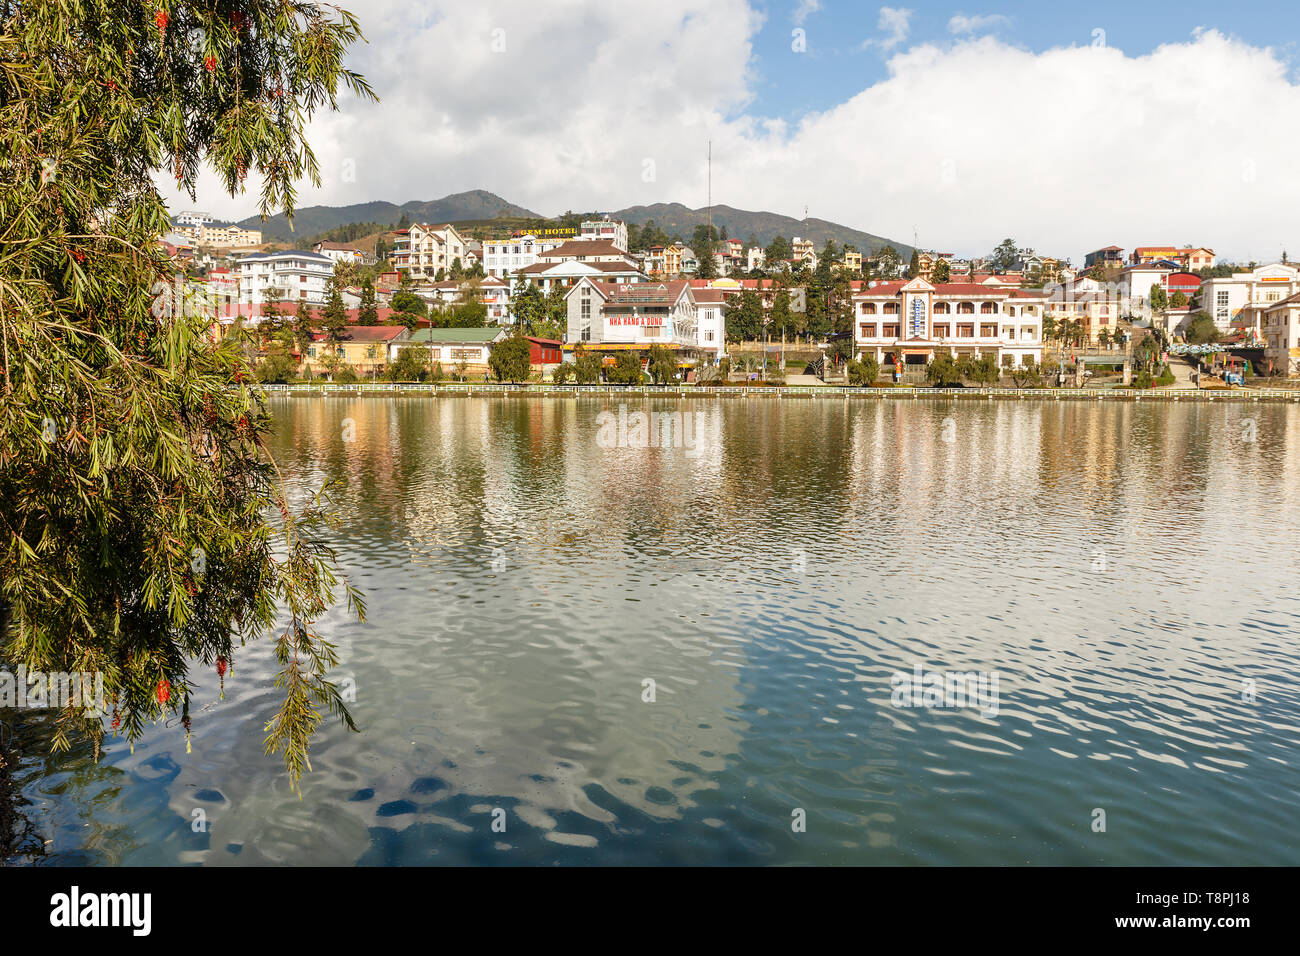 Sapa, Vietnam - November 20, 2018: View of the city of Sapa. Pond in the park in the foreground. - Stock Image